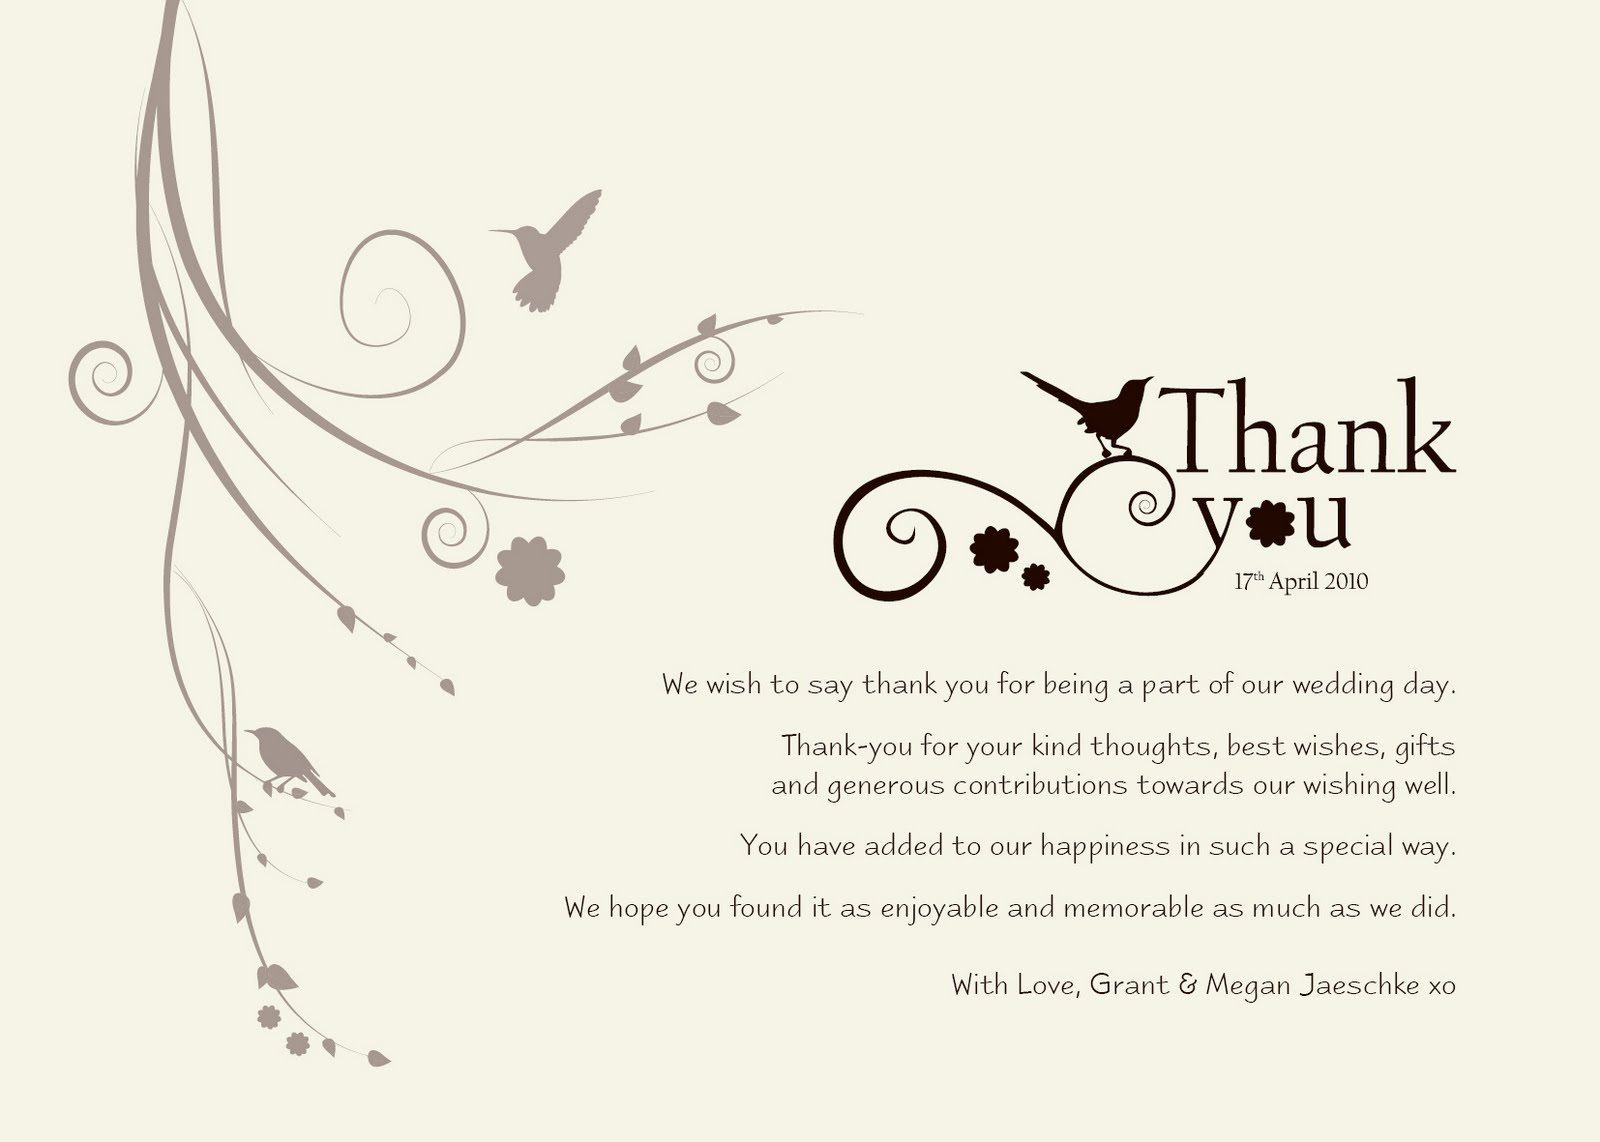 Wedding thank you templates goseqh wedding thank you templates friedricerecipe